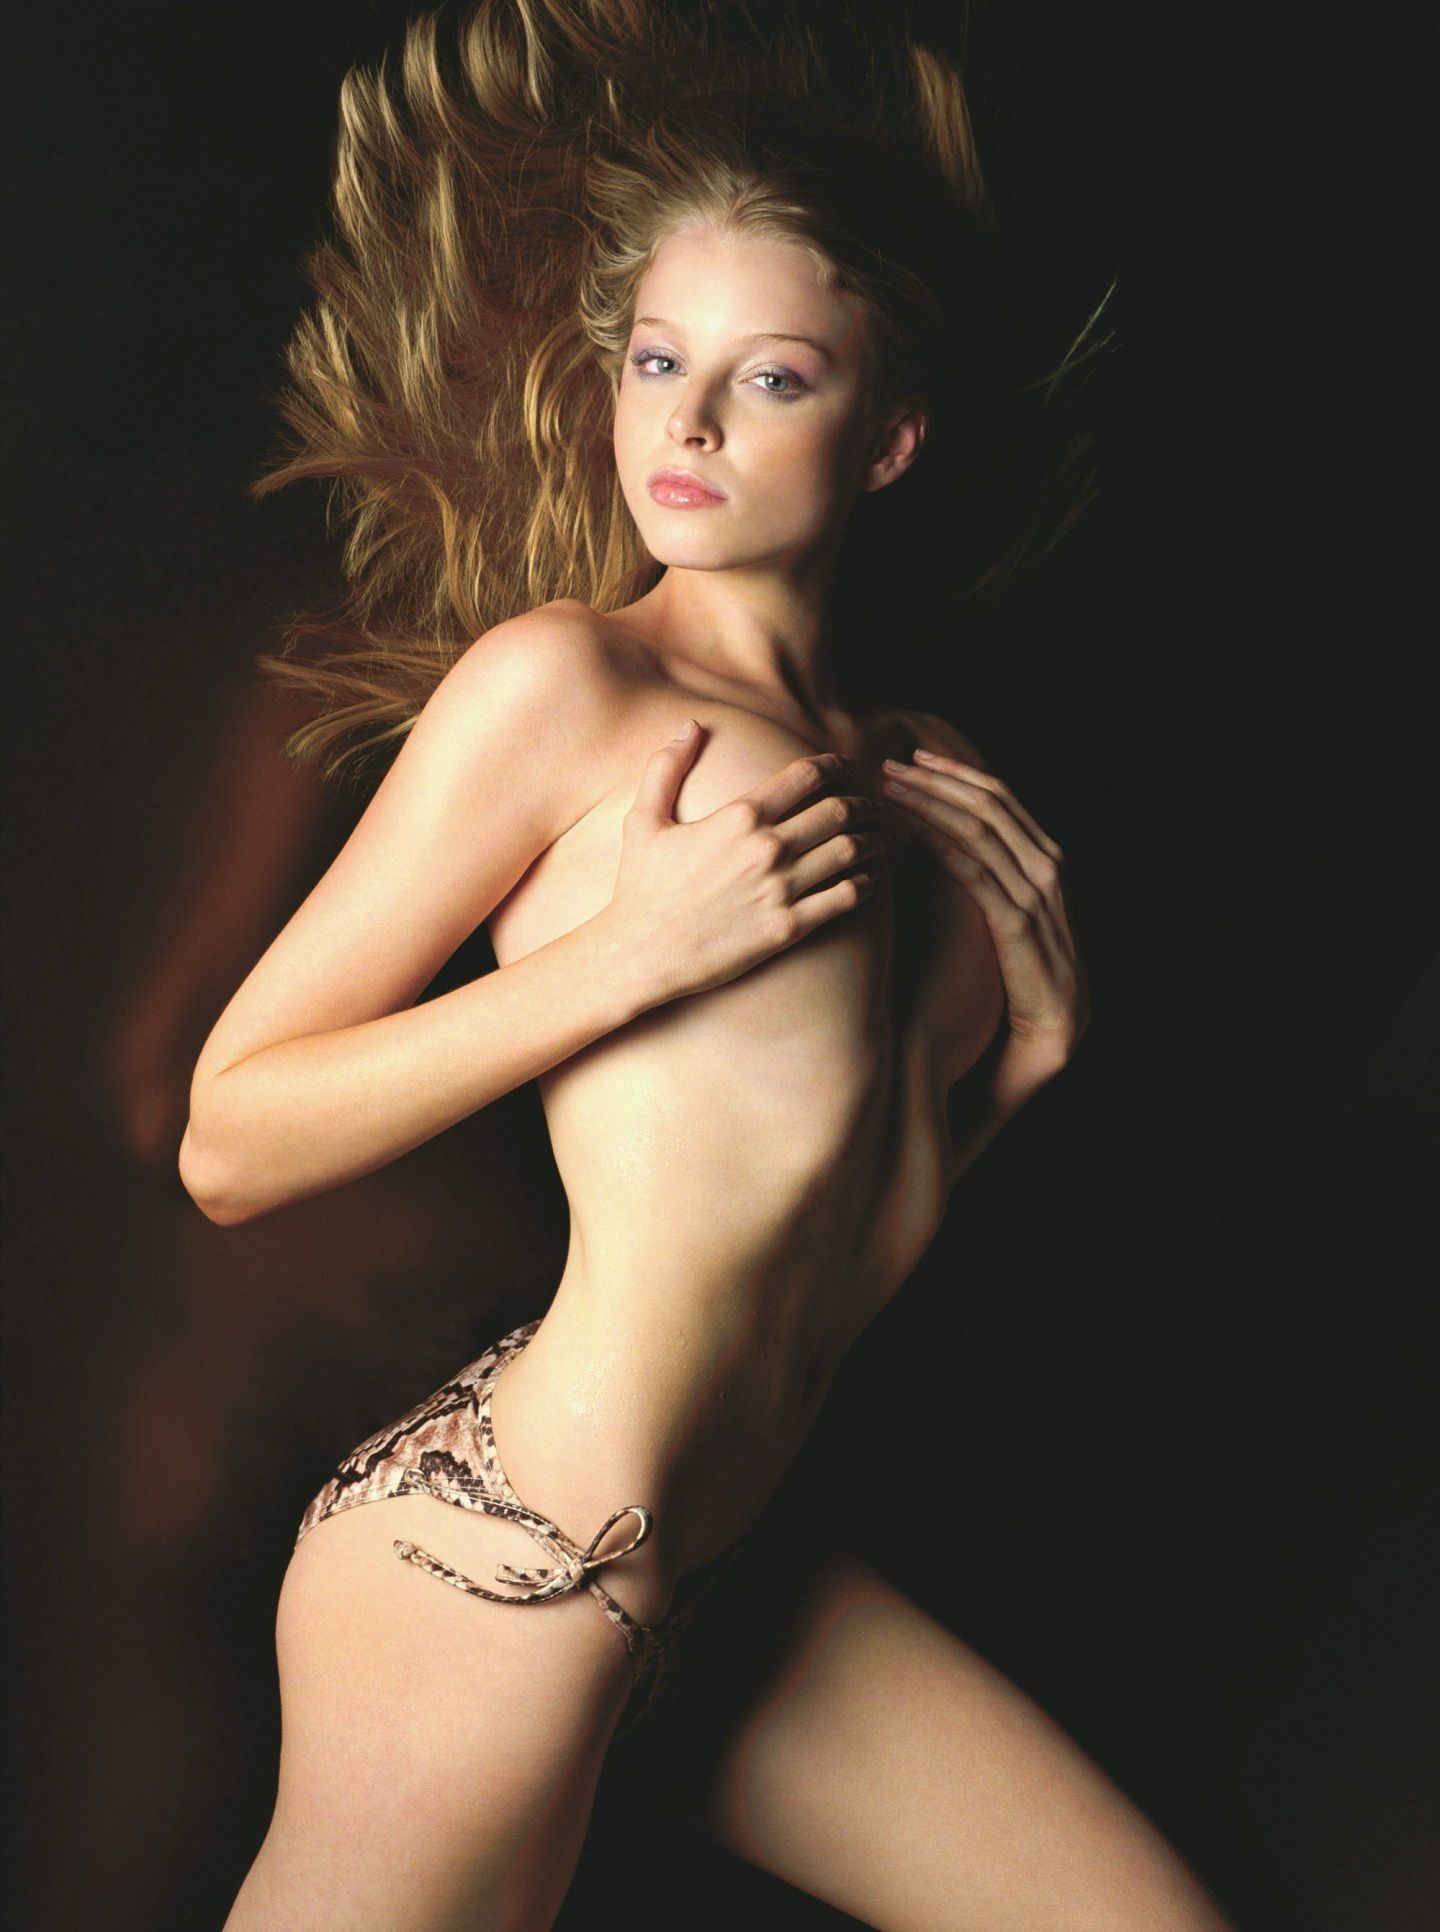 images American actress and model rachel nichols nude leaked fappening sexy